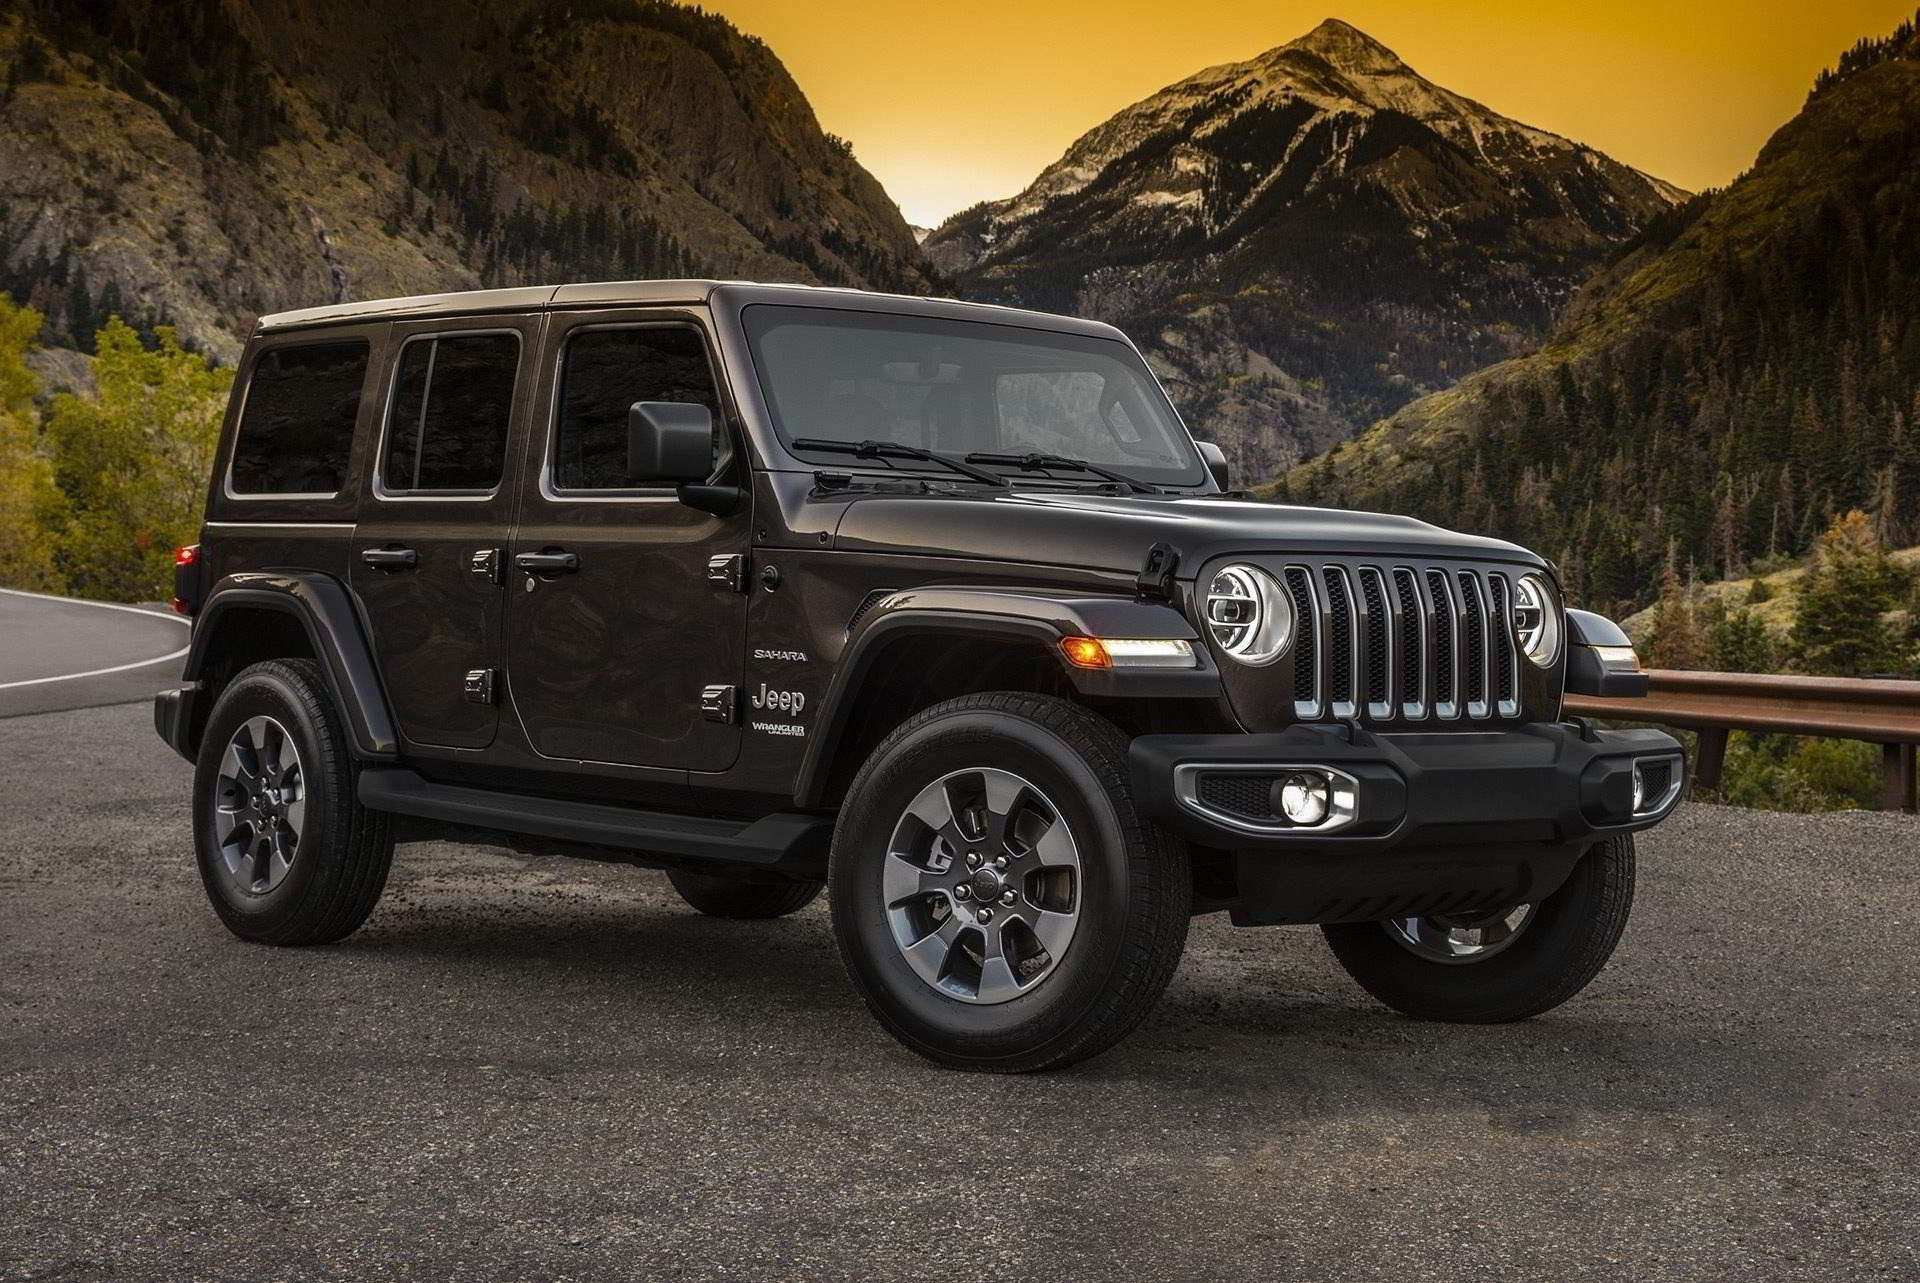 95 The 2019 Jeep Liberty Picture with 2019 Jeep Liberty